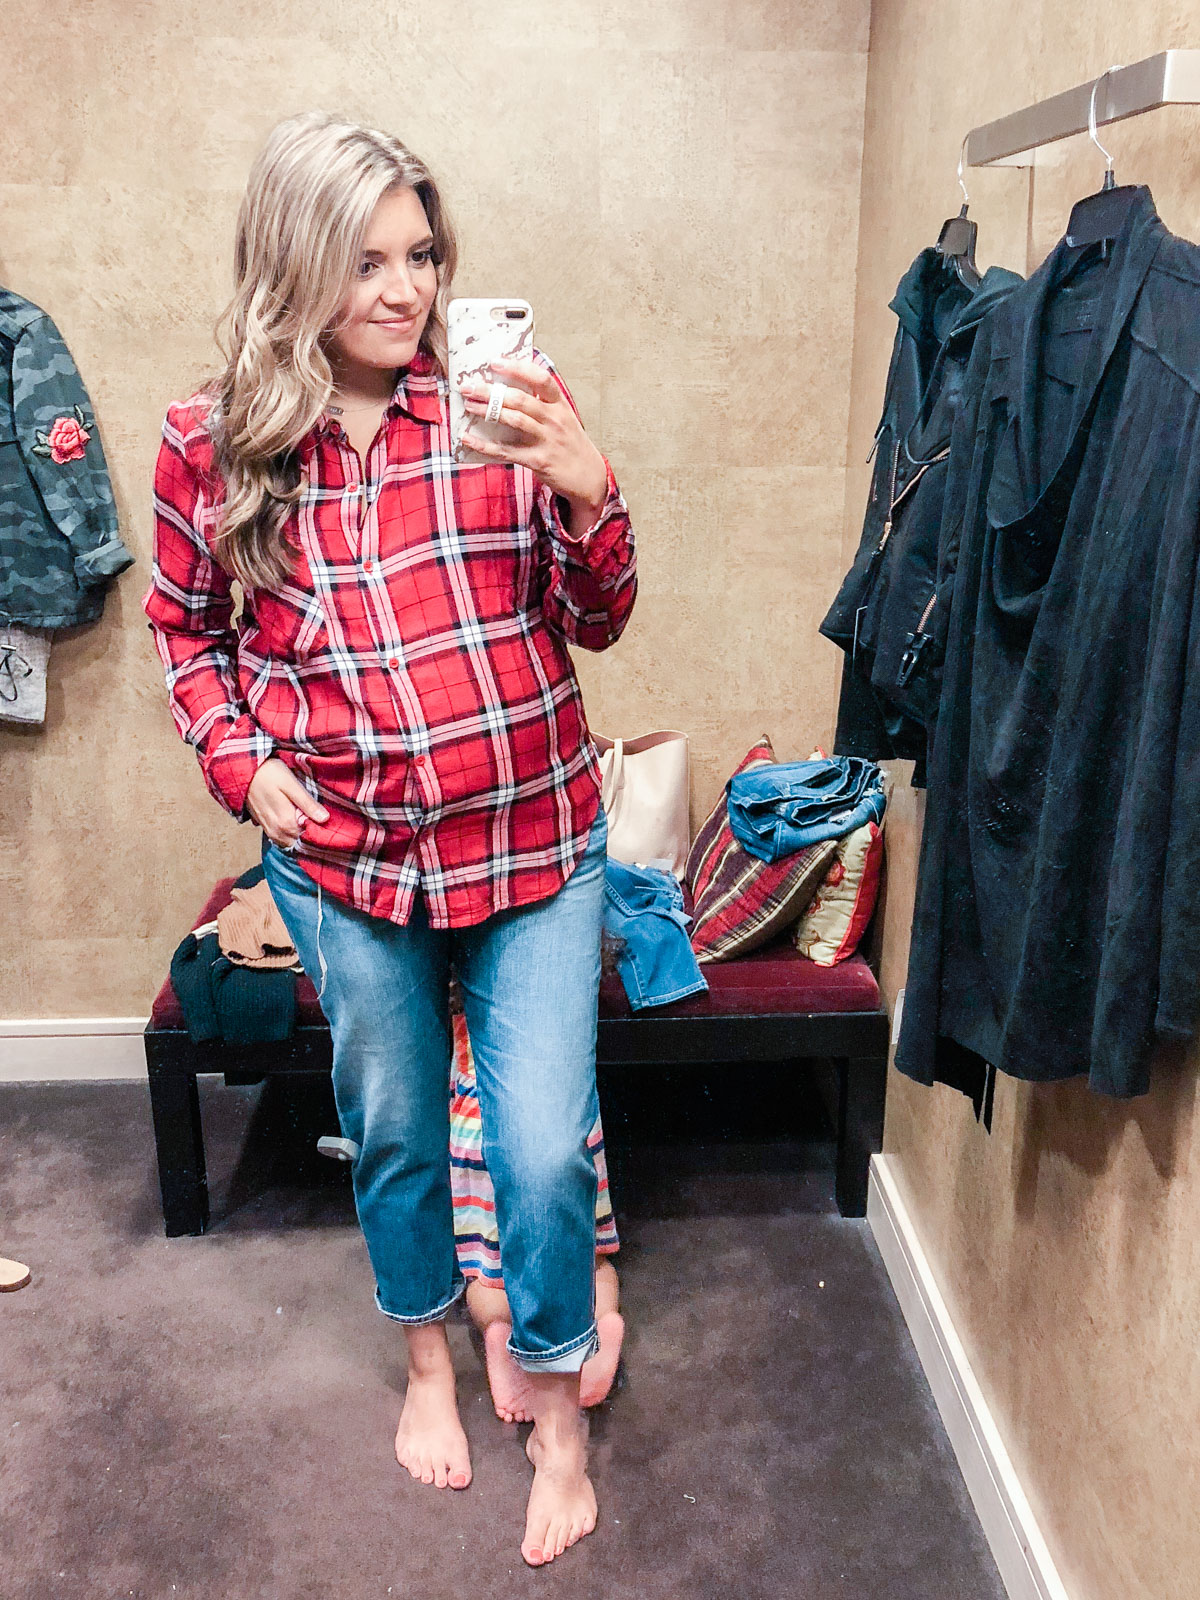 BP. plaid top - Nordstrom anniversary sale 2018 try-on session: over 25 items reviewed for fit and size! | bylaurenm.com